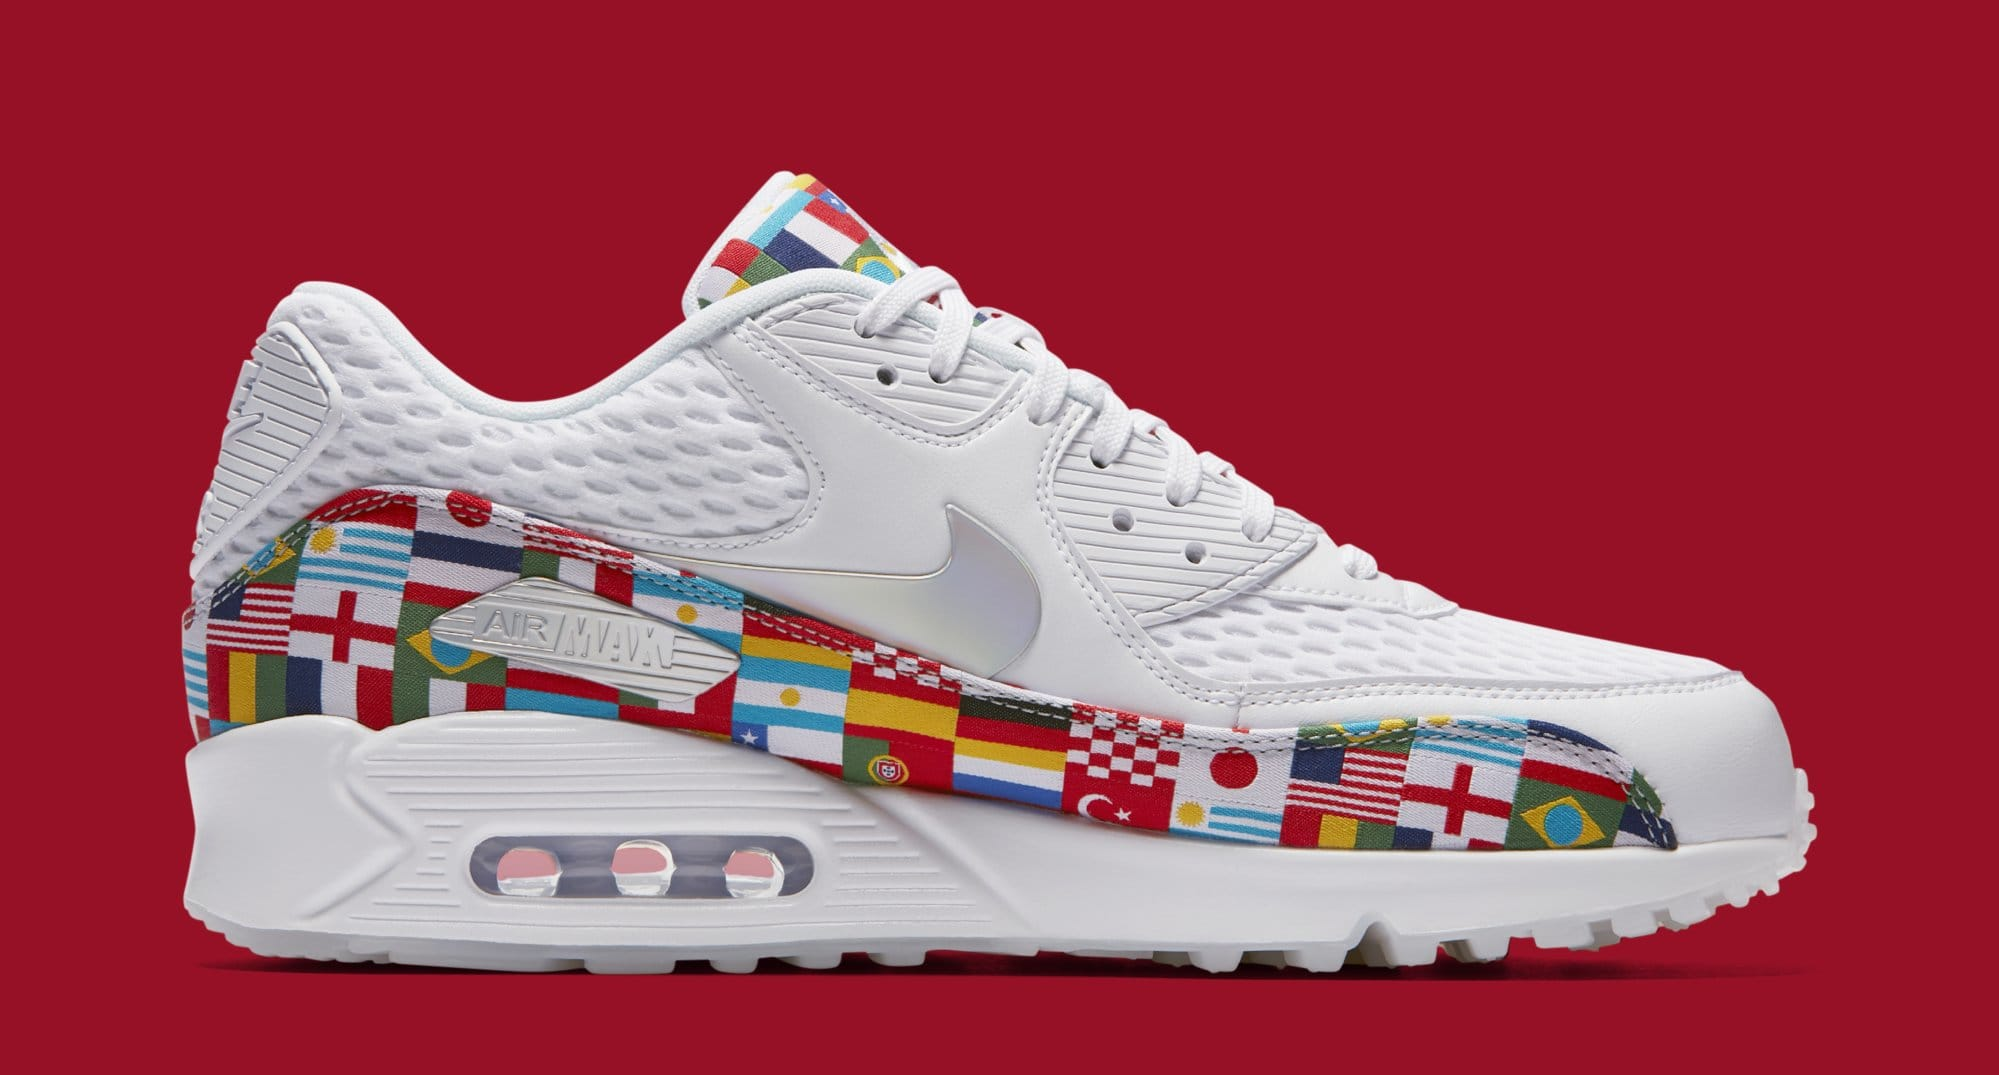 Nike Air Max 90 'One World' AO5119-100 (Medial)